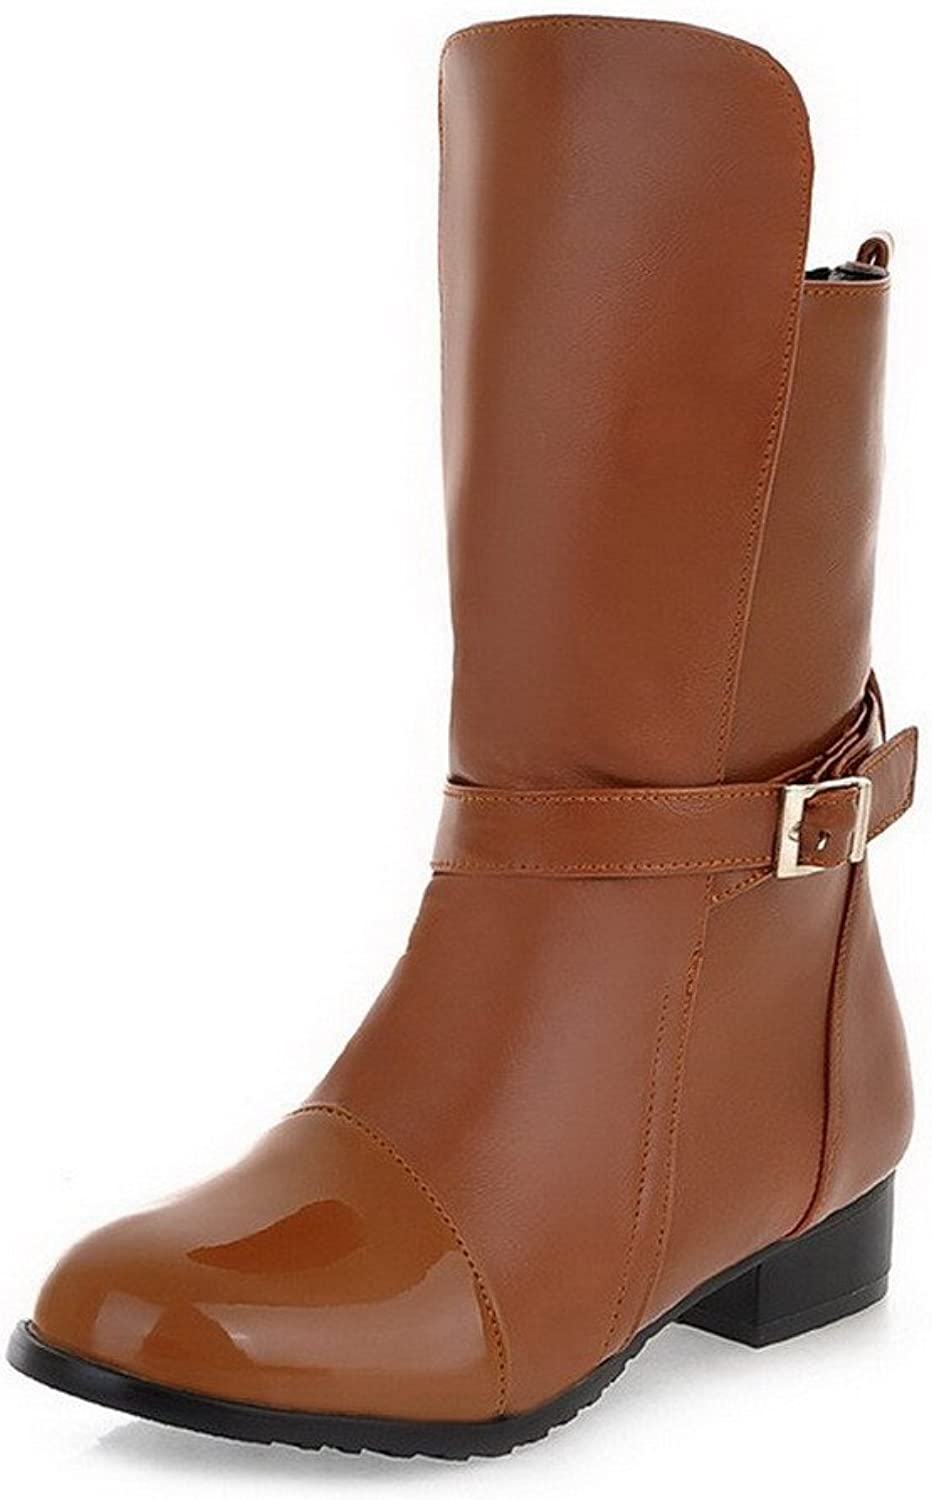 WeiPoot Women's Soft Leather Pull-On Round Closed Toe Low-Heels Low-Top Boots